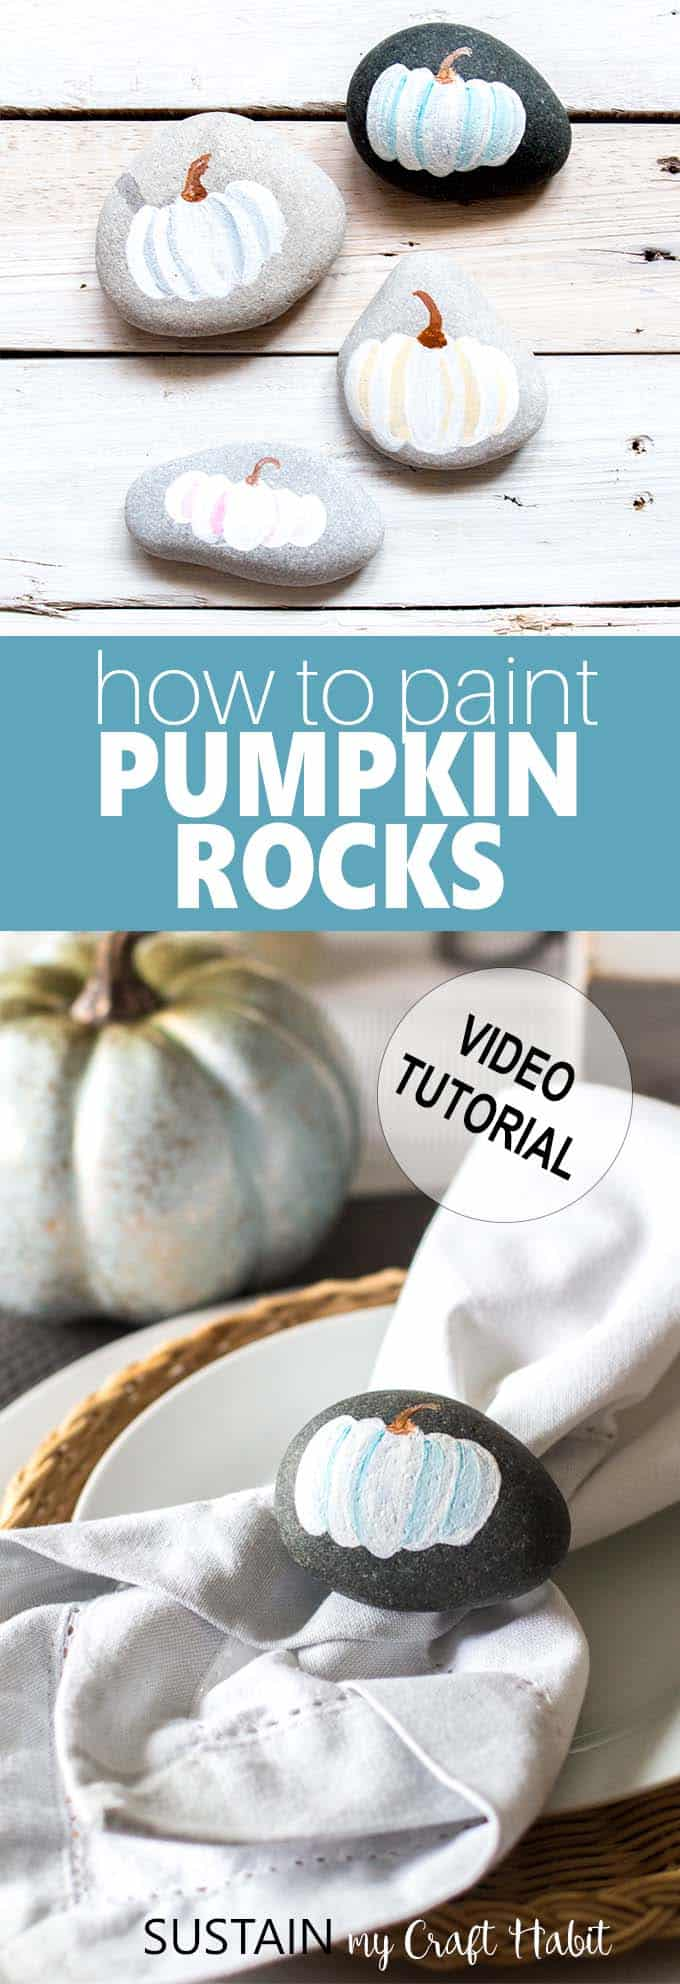 painted rock ideas for fall